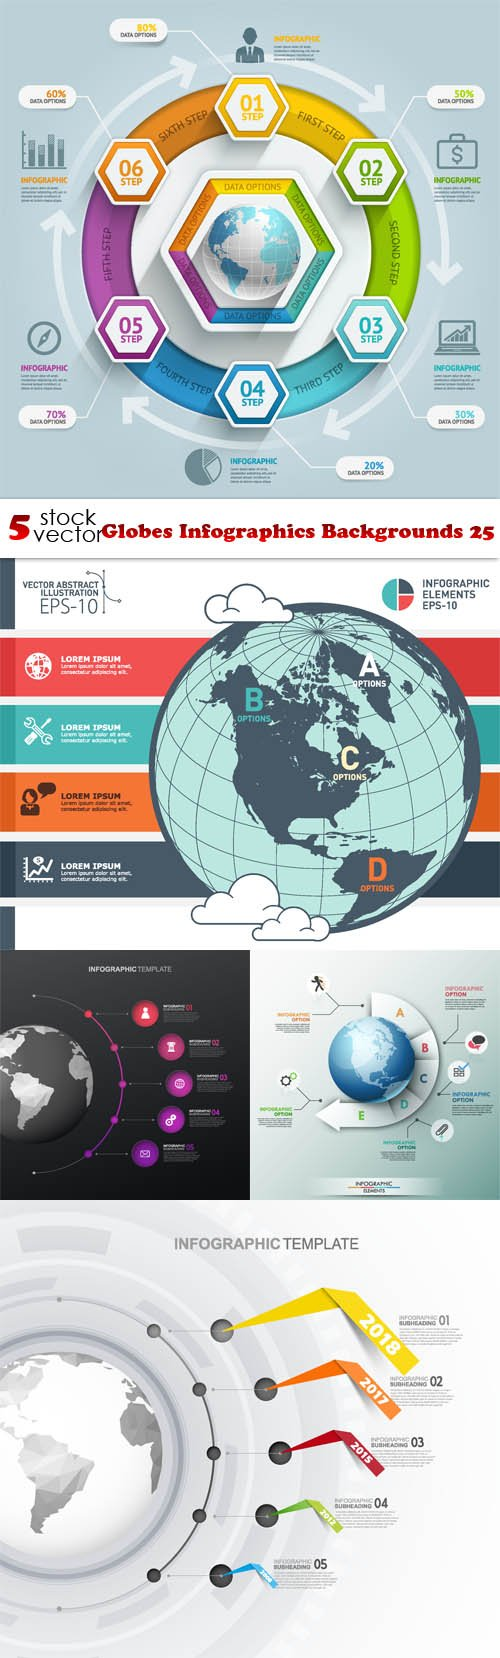 Vectors - Globes Infographics Backgrounds 25